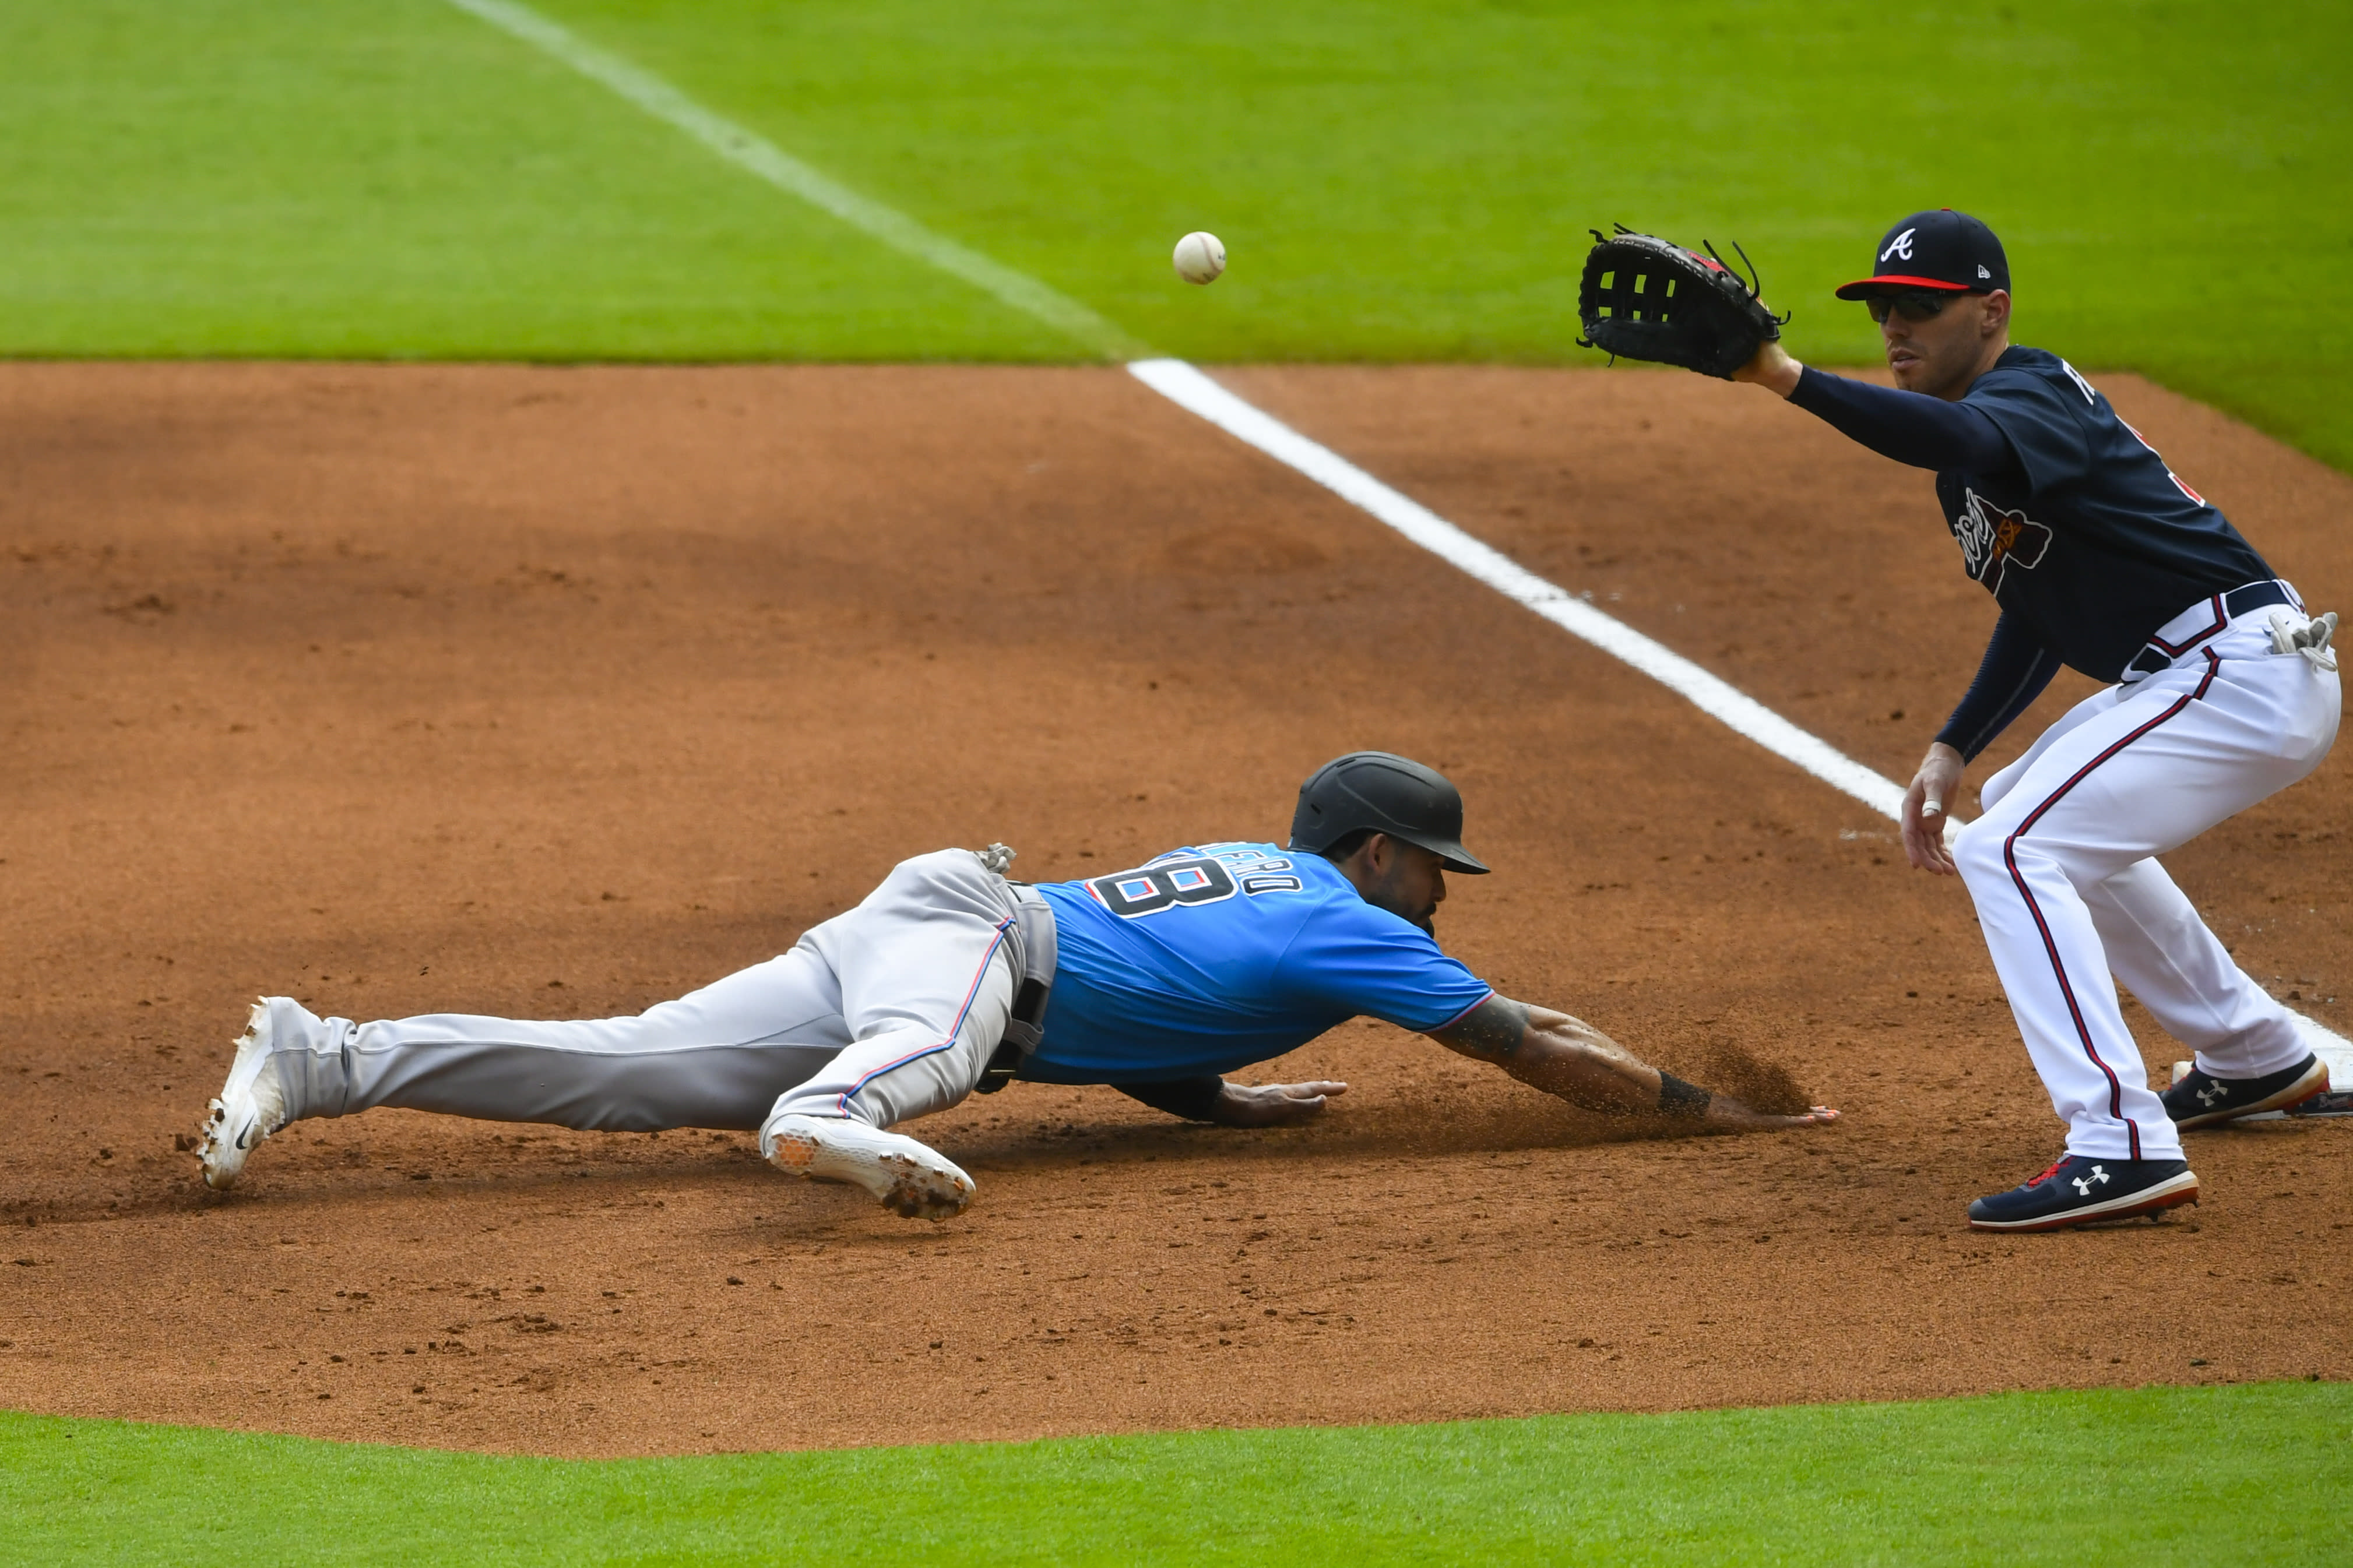 Miami Marlins' Jorge Alfaro beats a pick off attempt as Atlanta Braves' Freddie Freeman covers first base during the first inning of an exhibition baseball game Wednesday, July 22, 2020, in Atlanta. (AP Photo/John Amis)